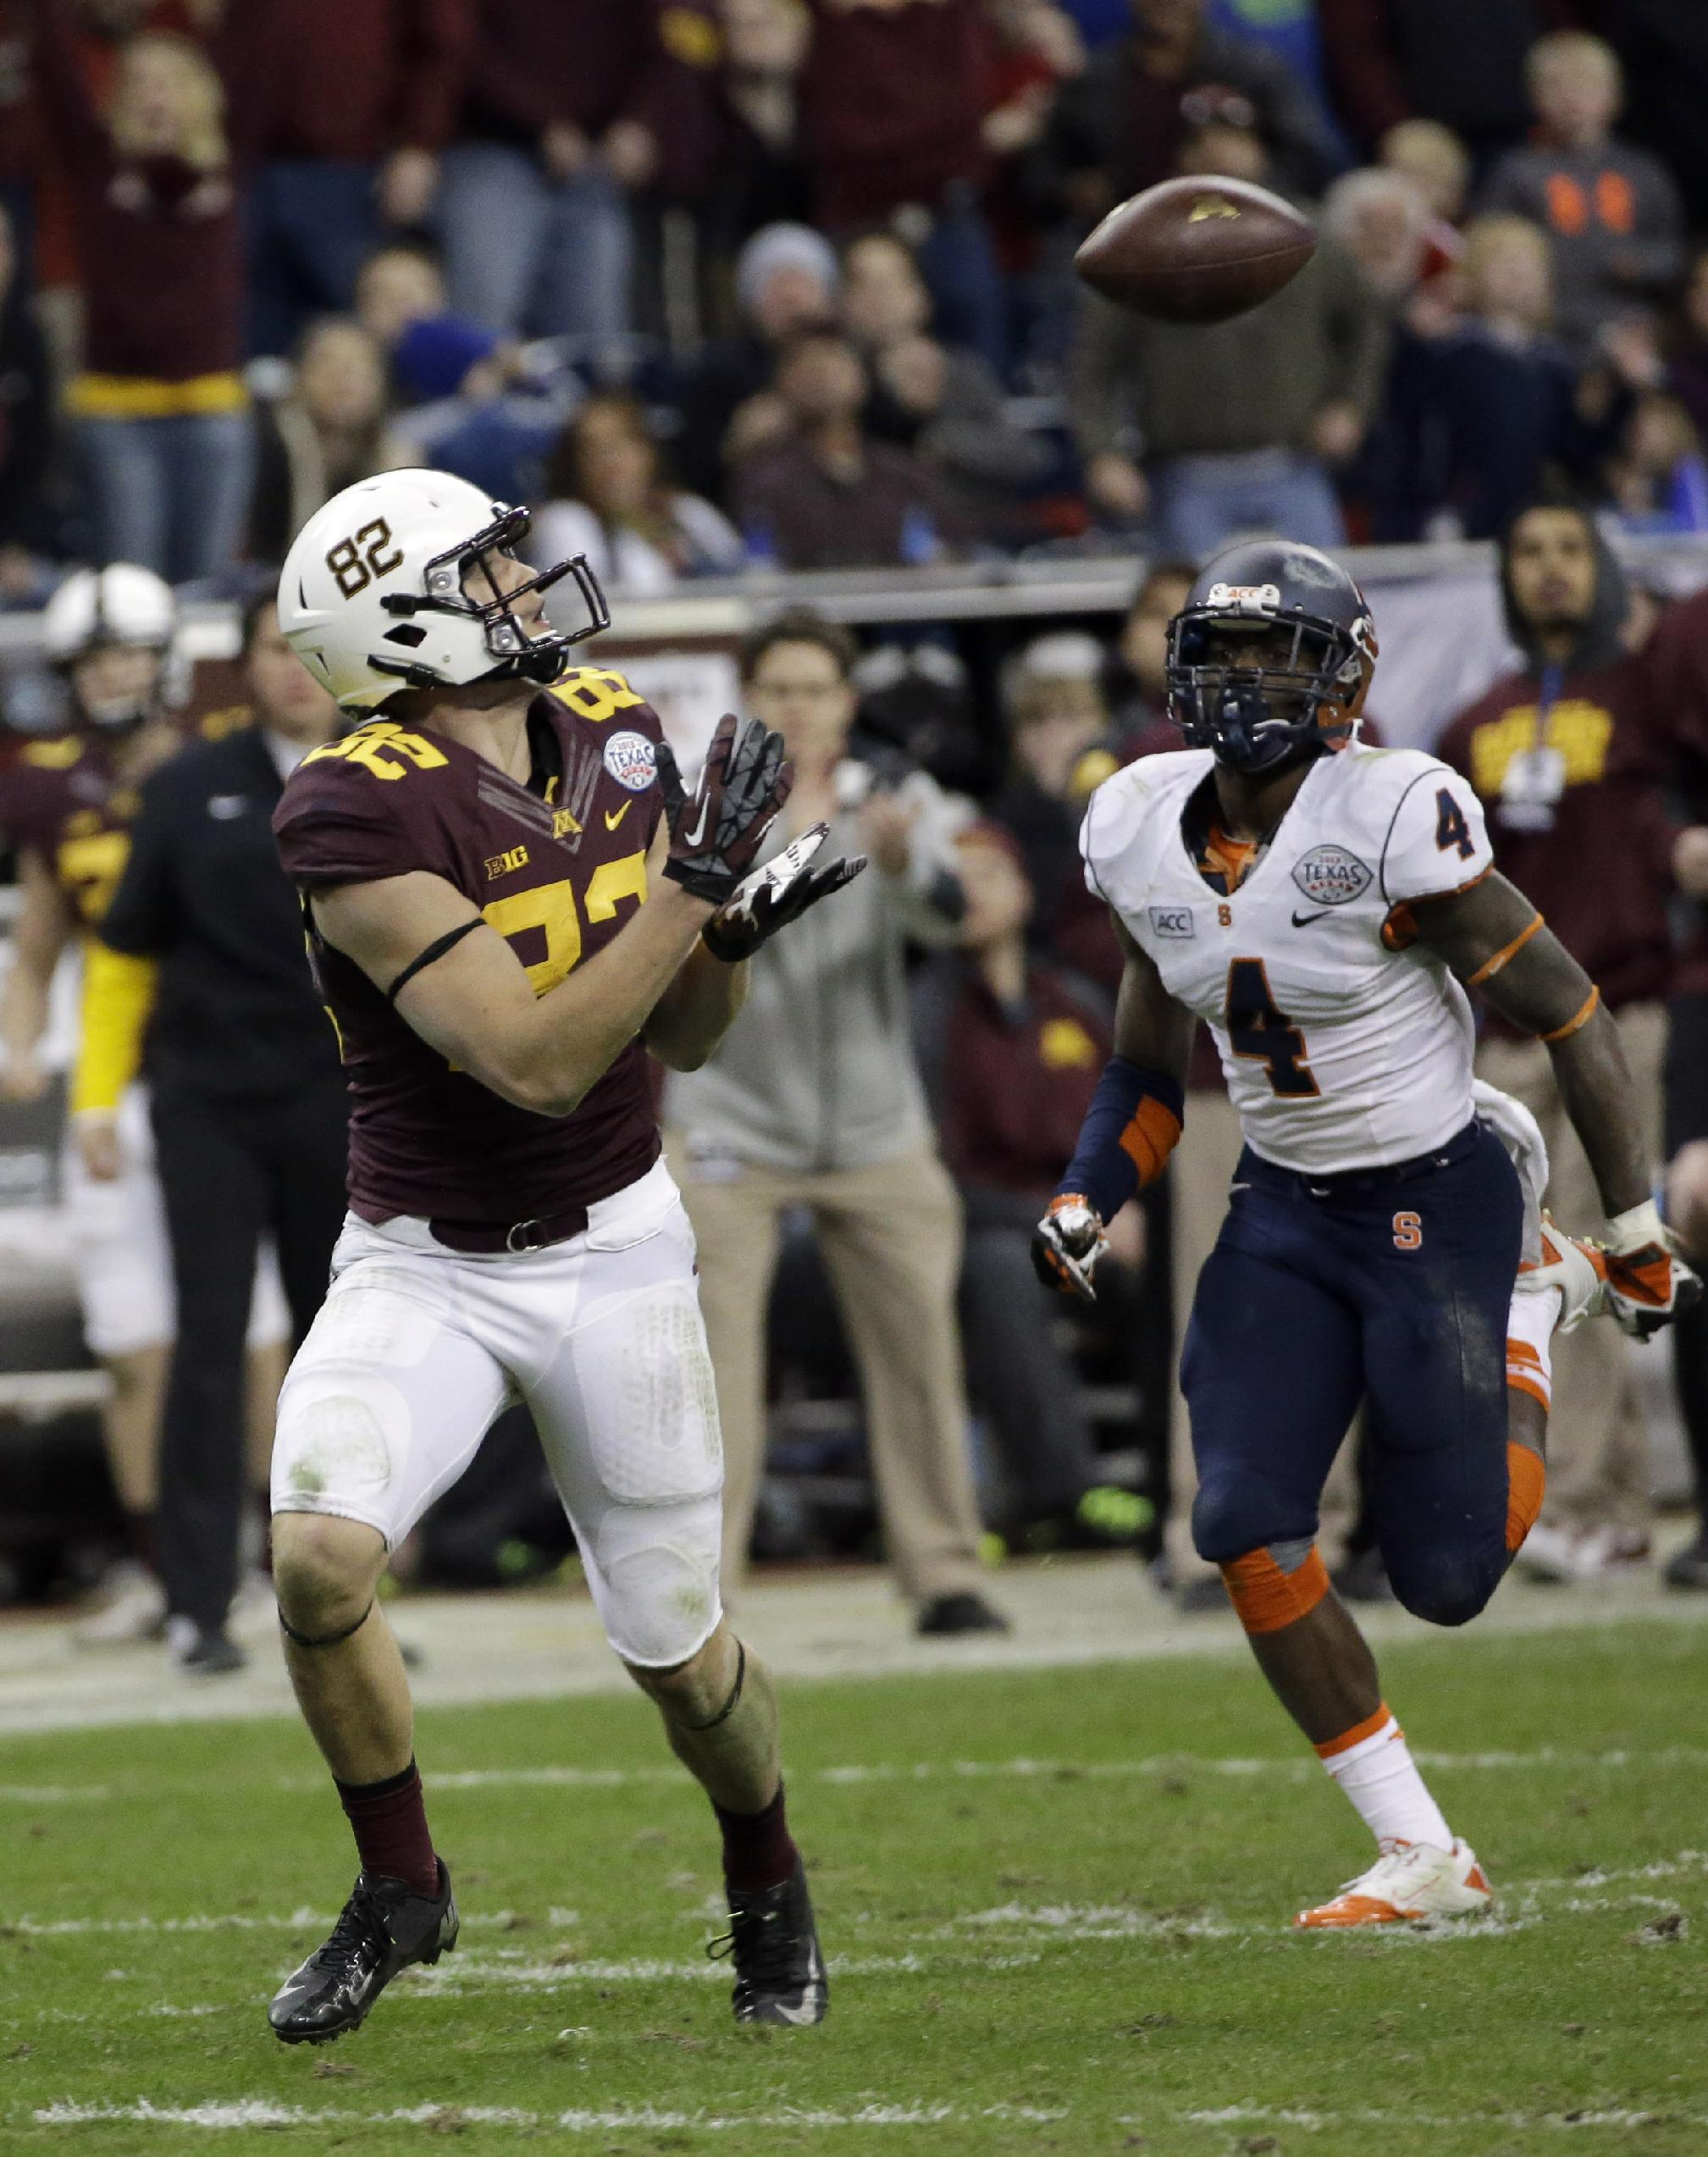 Minnesota wide receiver Drew Wolitarsky (82) catches a pass for a touchdown as Syracuse cornerback Brandon Reddish (4) defends during the second half of the Texas Bowl NCAA college football game on Friday, Dec. 27, 2013, in Houston. Syracuse won 21-17